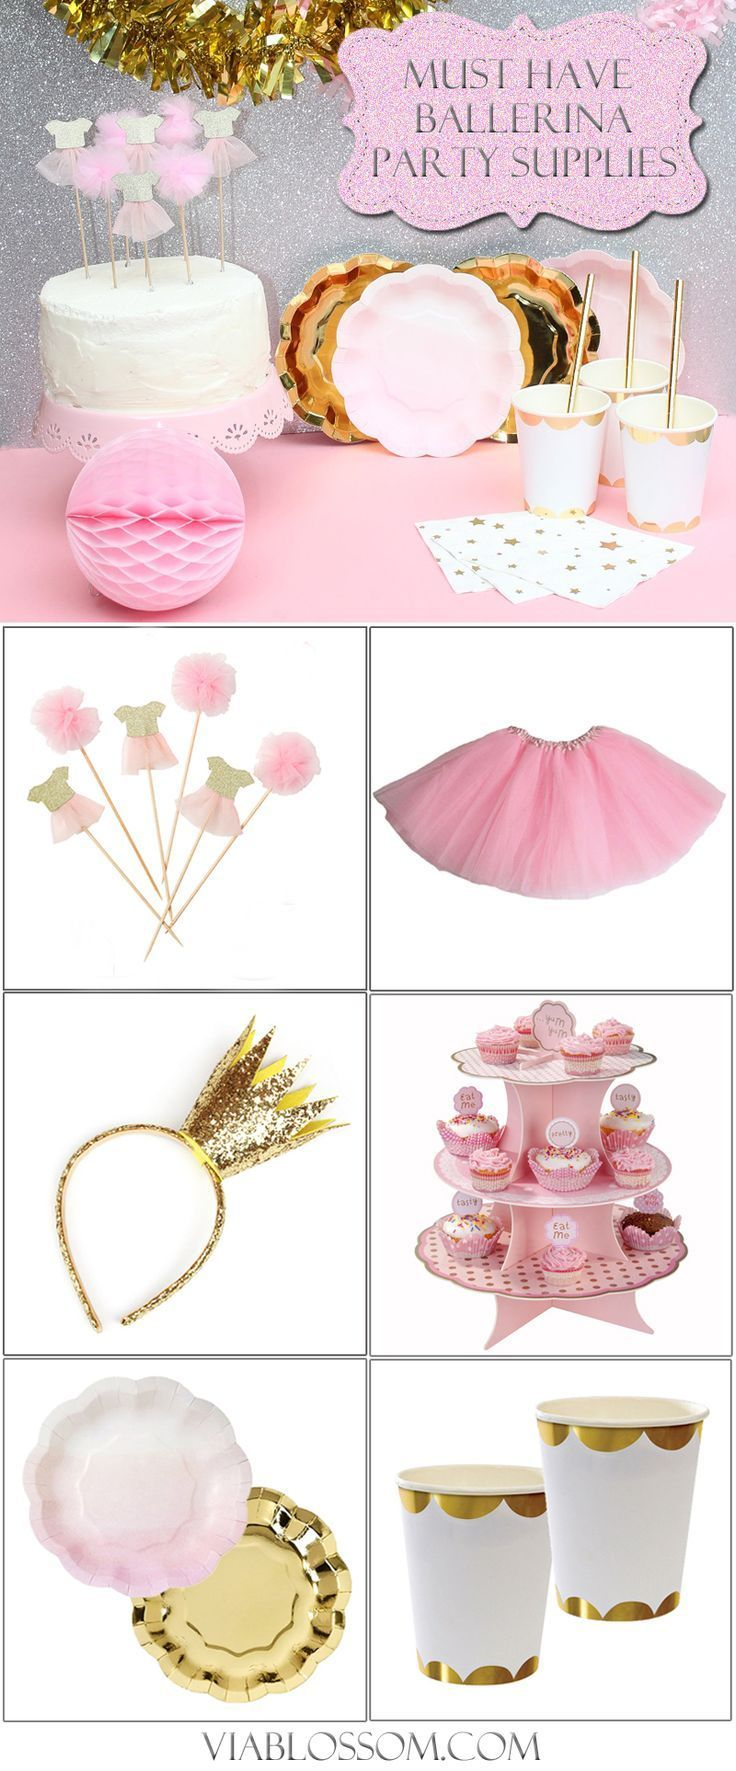 Must Have Ballerina Party Supplies for a Magical girl birthday party! If you are planning a Ballerina Party then you will love our Ballerina decorations!  Shop all at http://viablossom.com